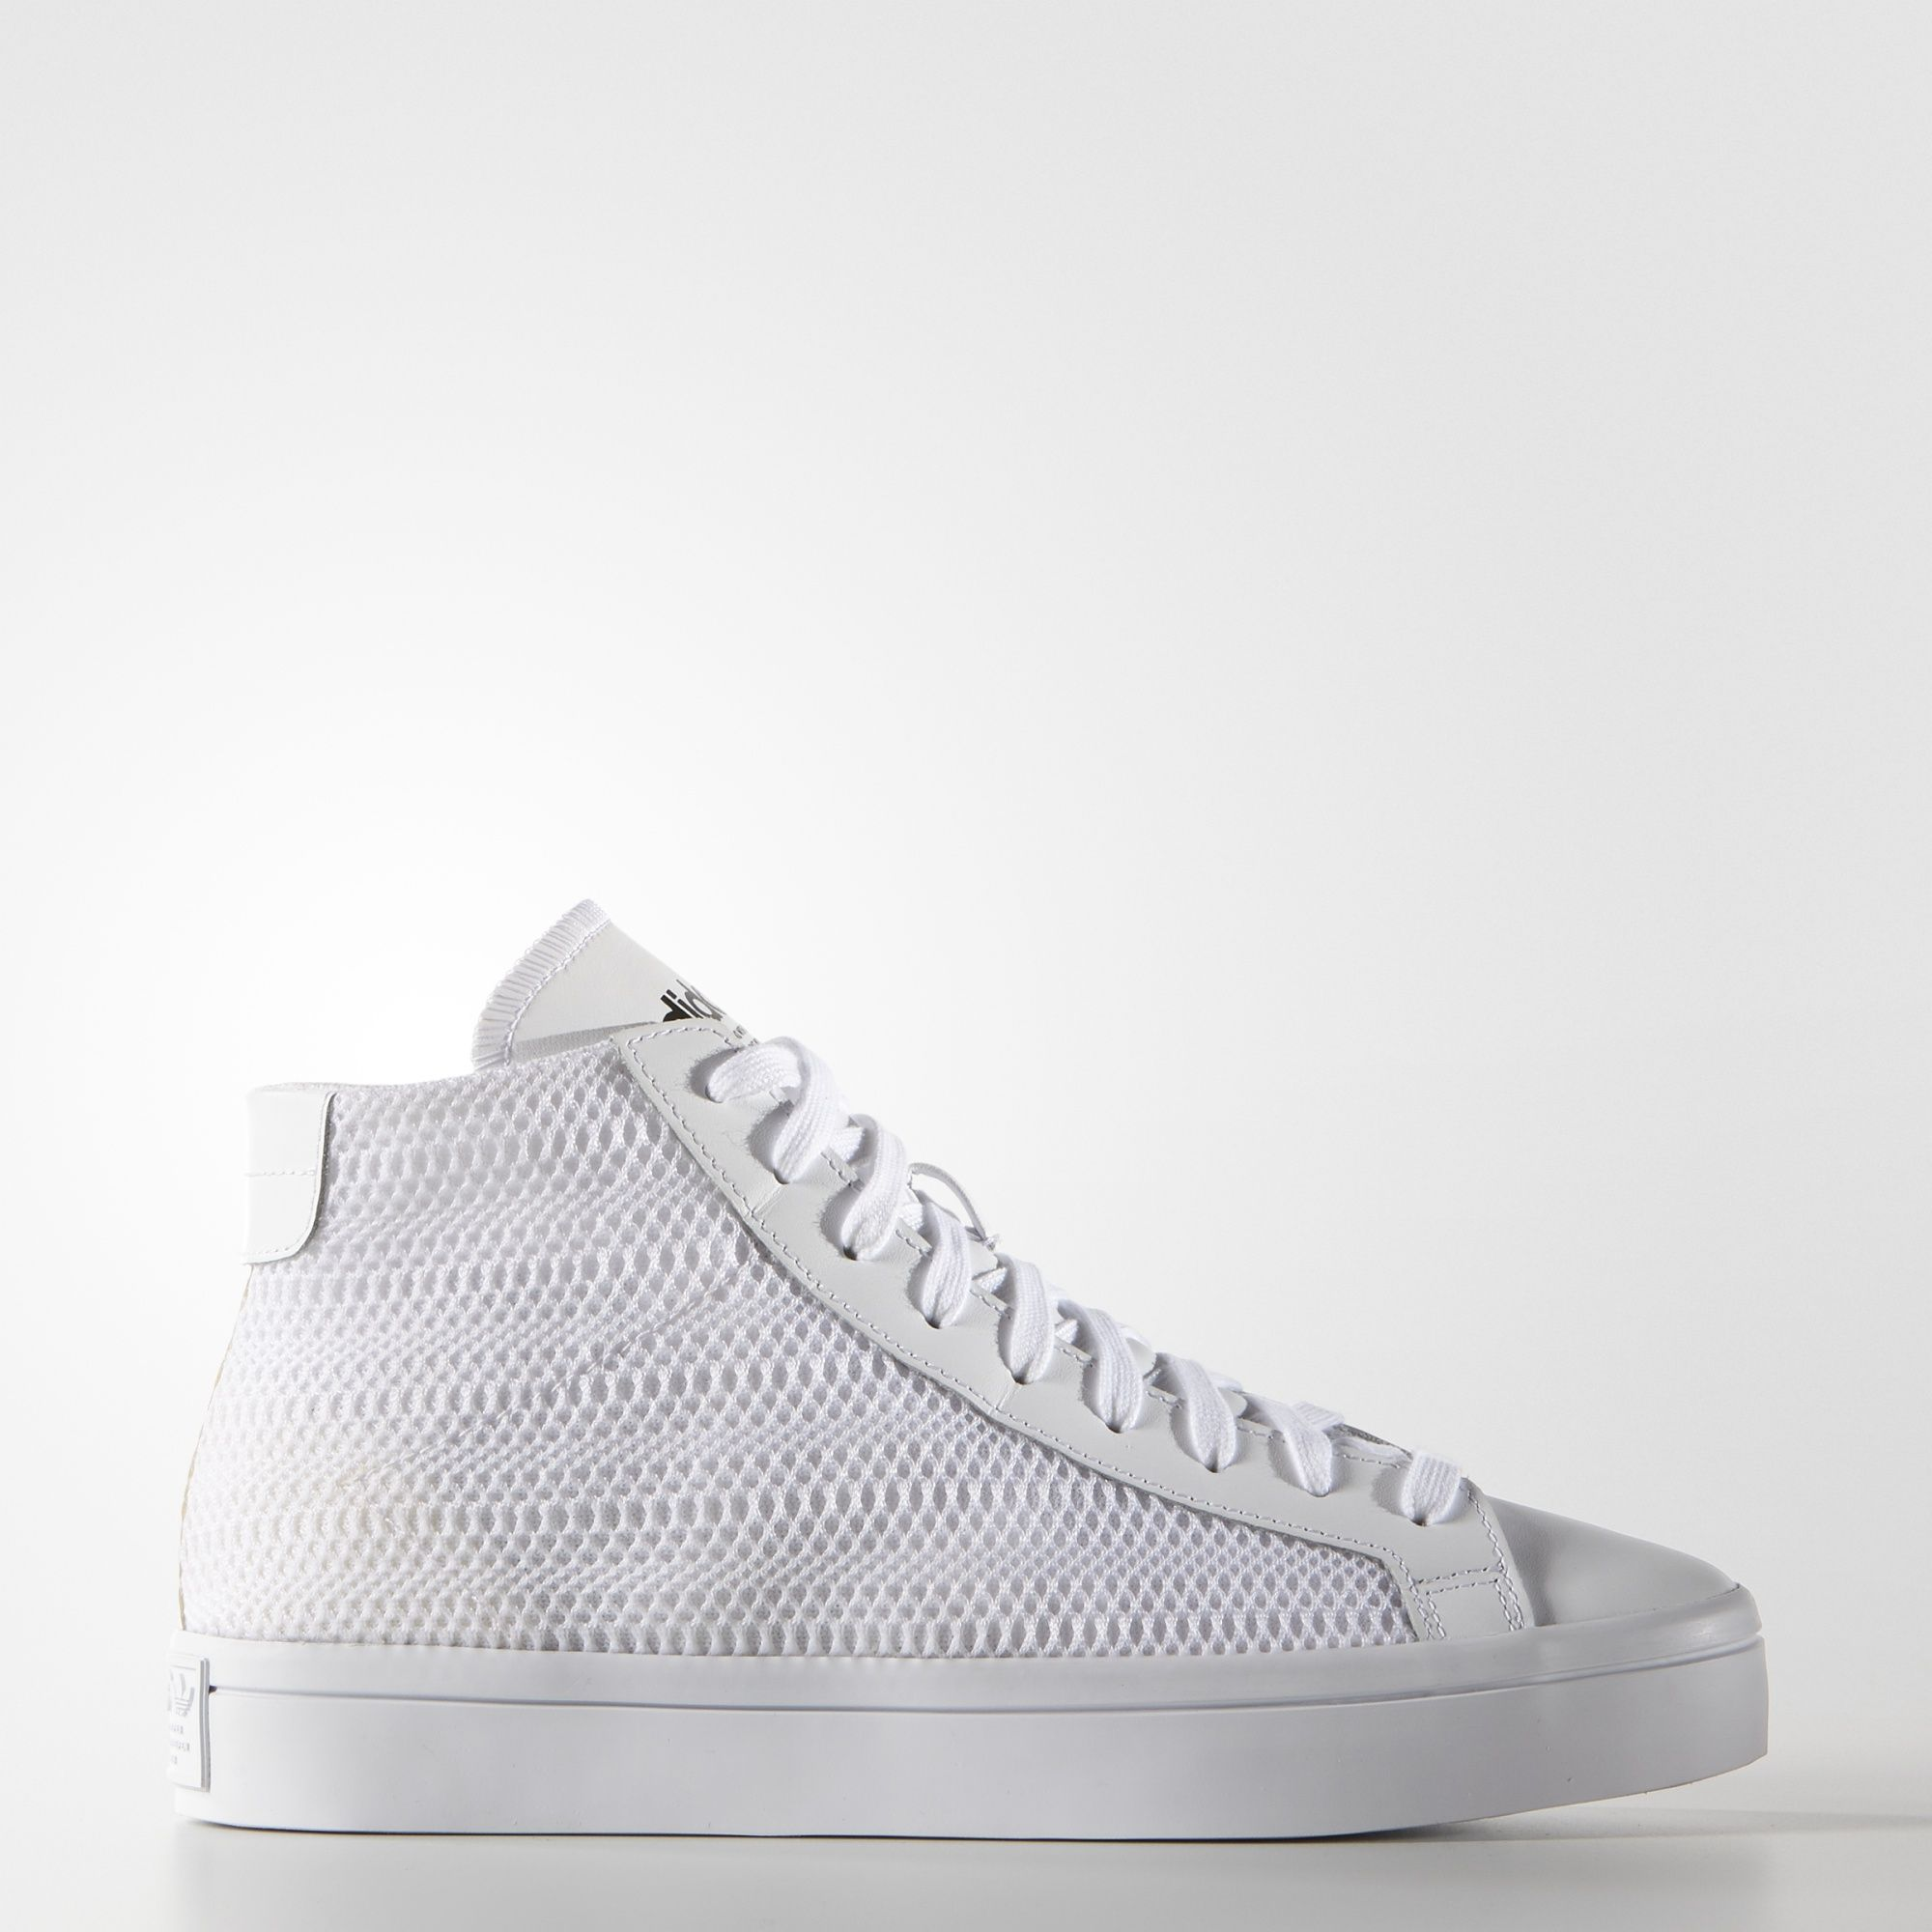 Elaborar principal llorar  Inspired by the iconic Rod Laver, the original Court Vantage shoes ...